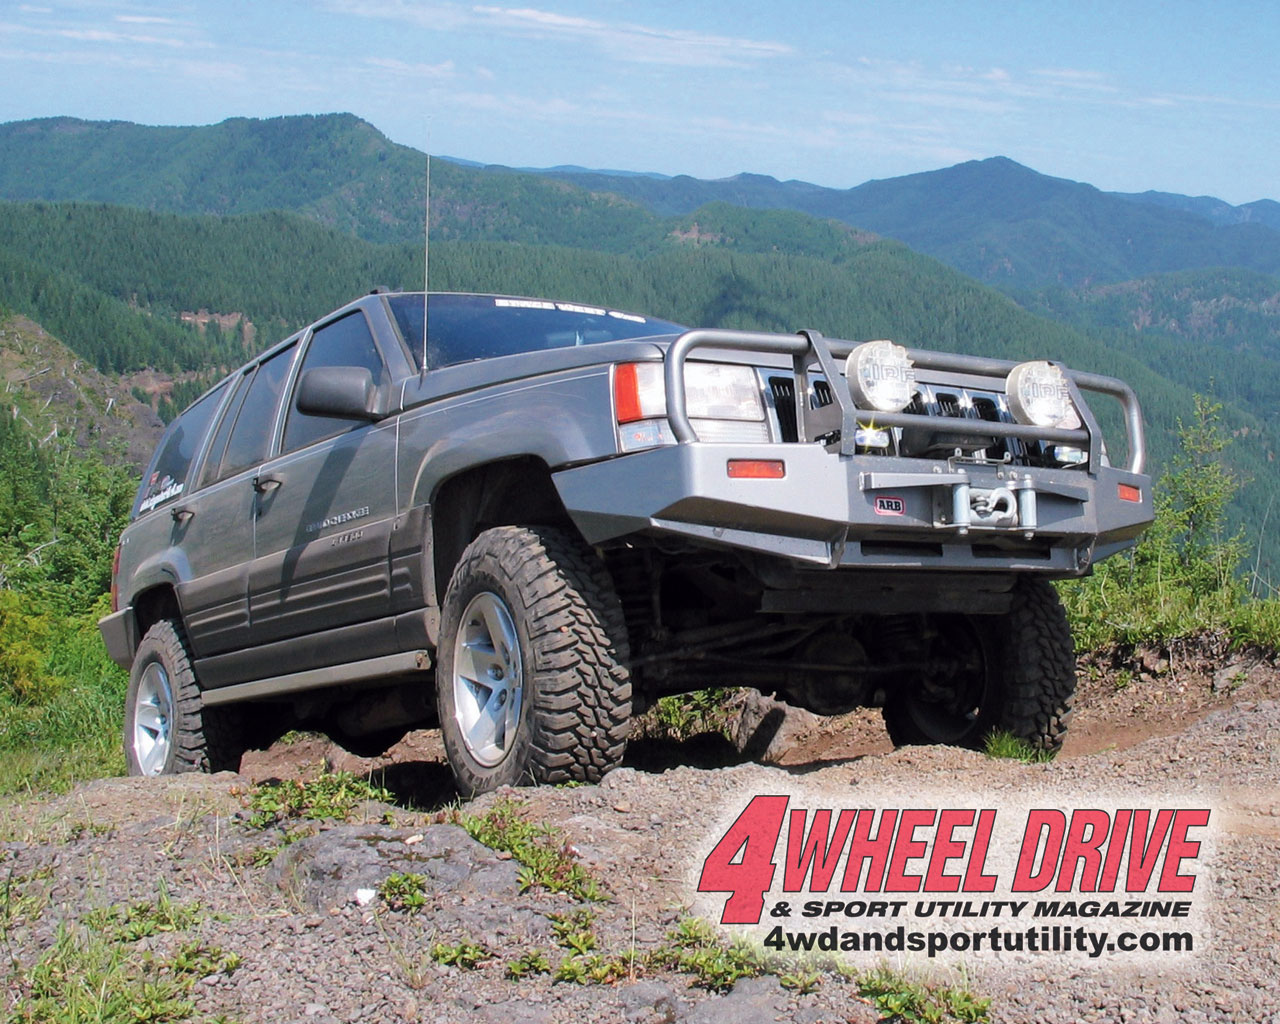 0507 4wd+oregon trail grand cherokee uphill+large